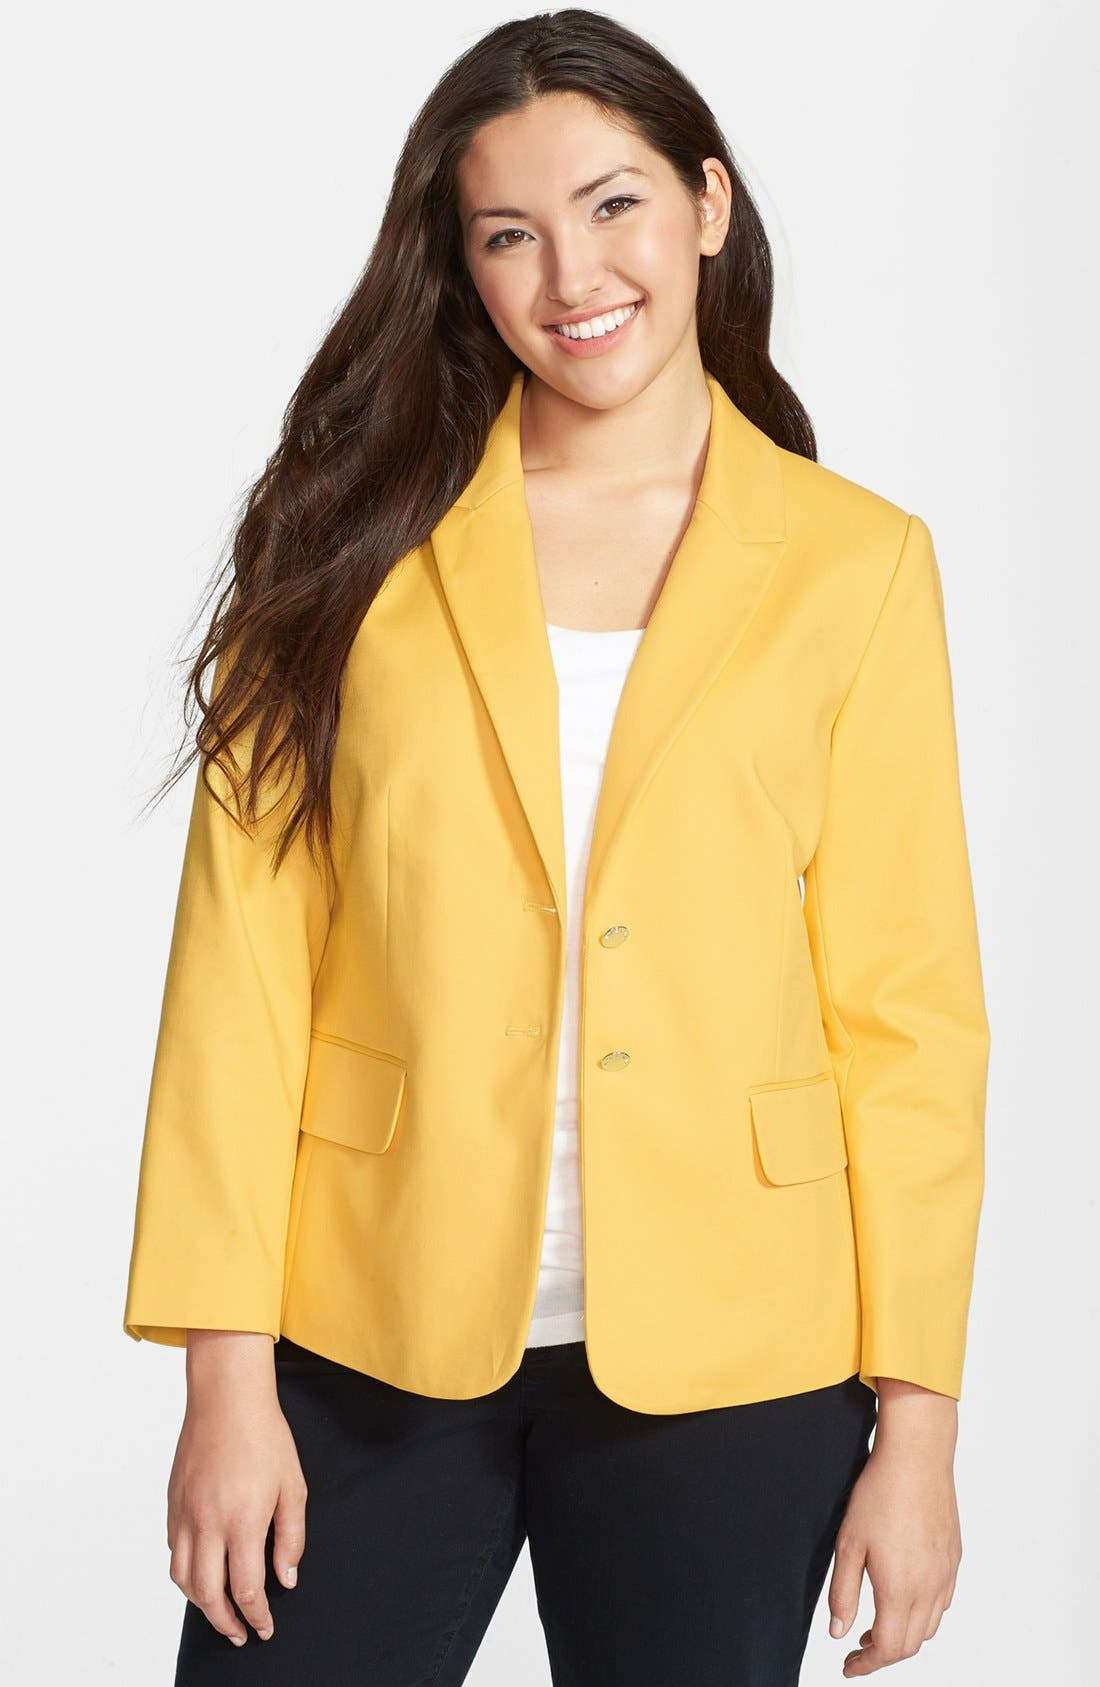 Alternate Image 1 Selected - Vince Camuto Stretch Cotton Blazer (Plus Size)